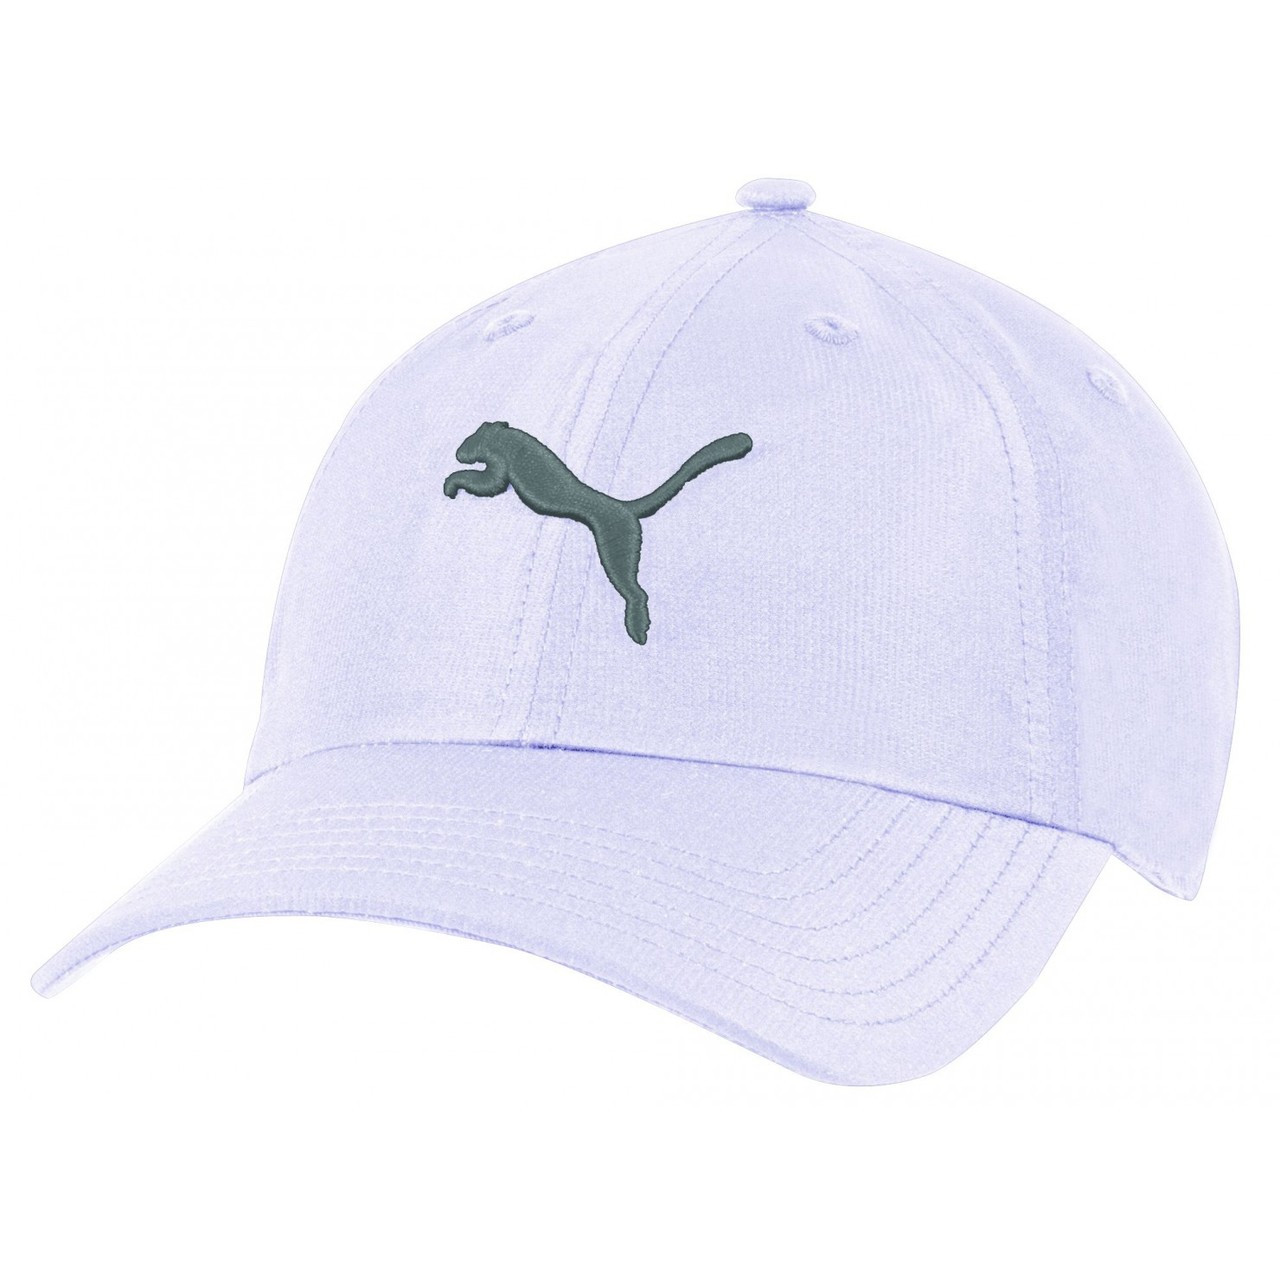 Puma Womens Cat Adjustable Cap White Silver - Fancaps ed48d3d01de